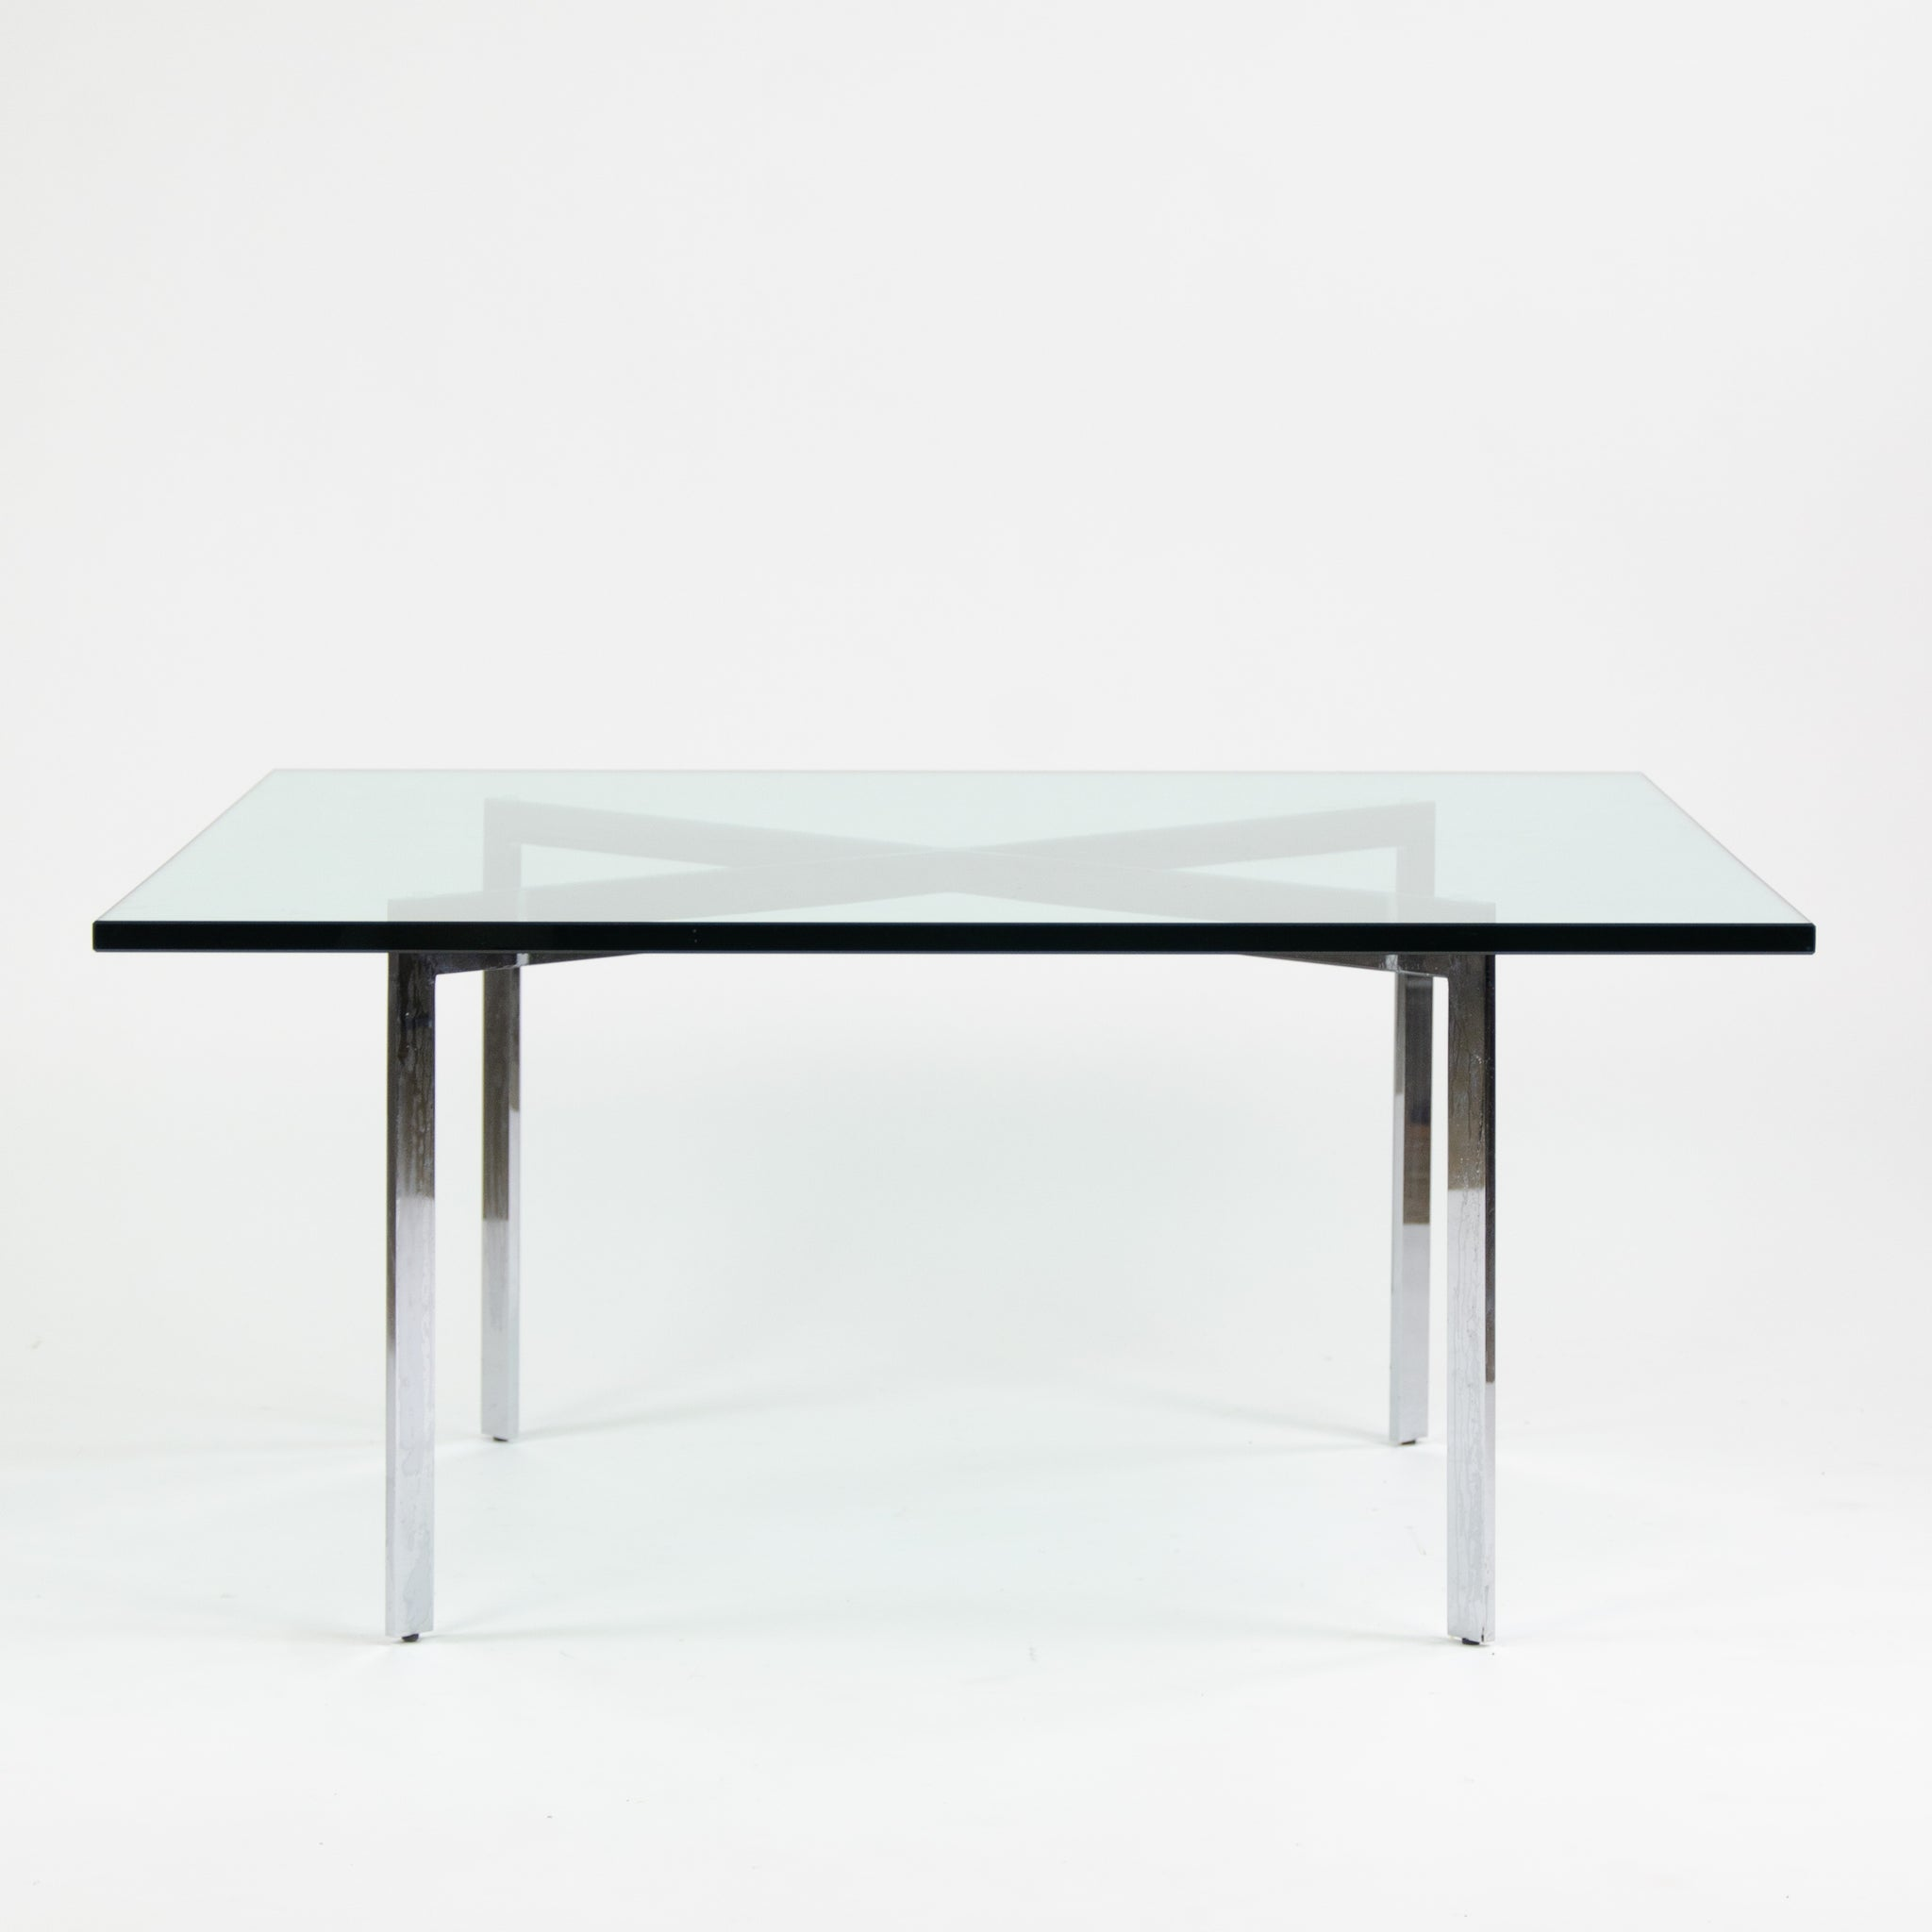 Gentil Knoll Mies Van Der Rohe Barcelona Coffee Table 40 Inch Glass Steel